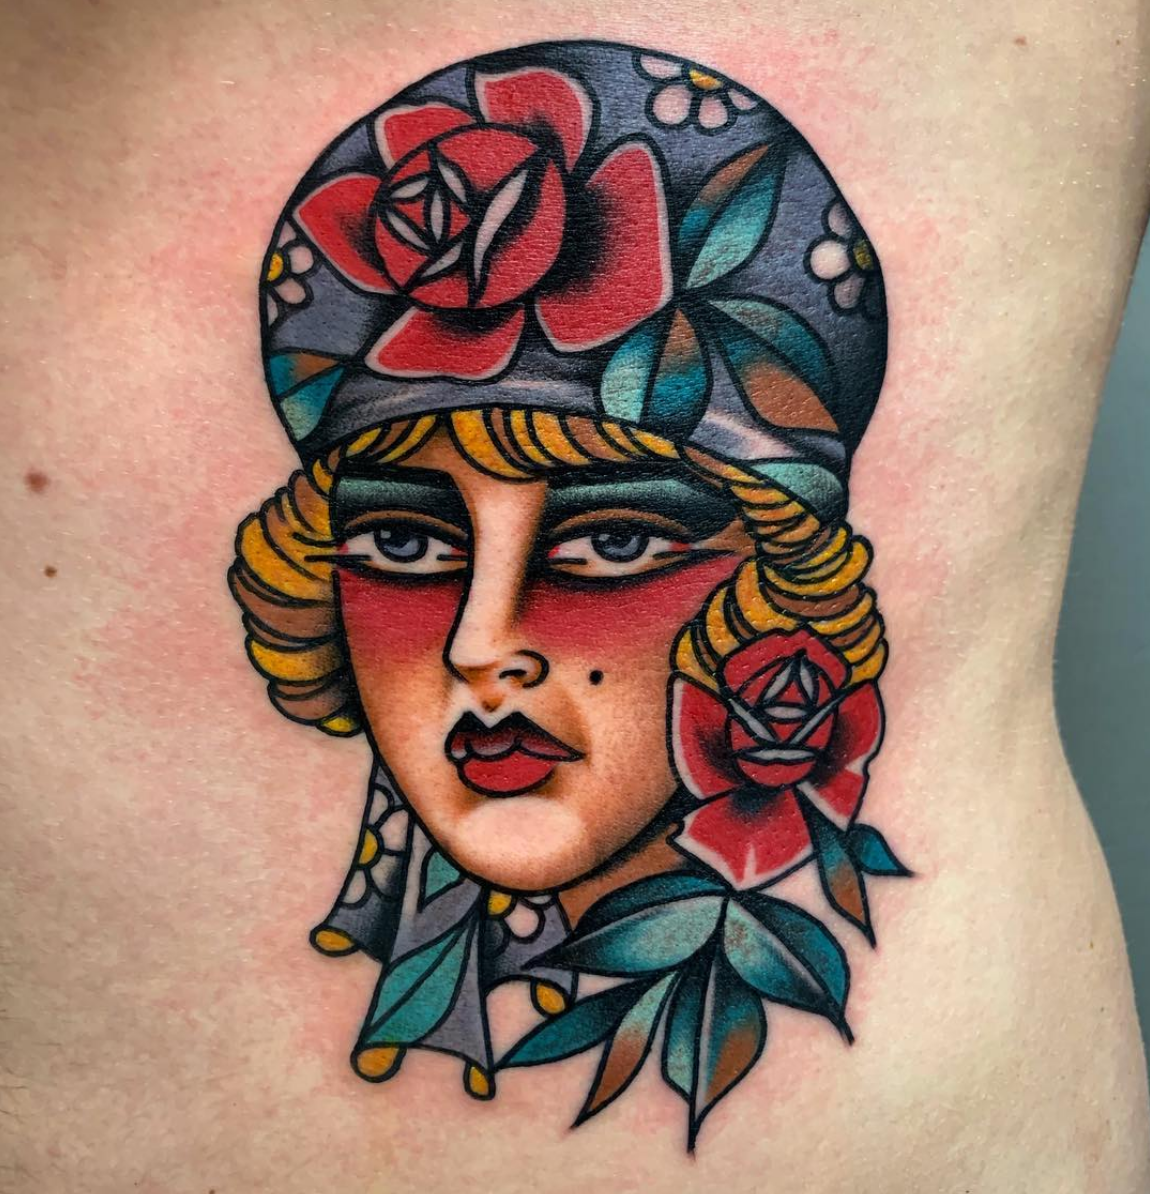 GypsyGirl.Tattoo.ChristianOtto.png